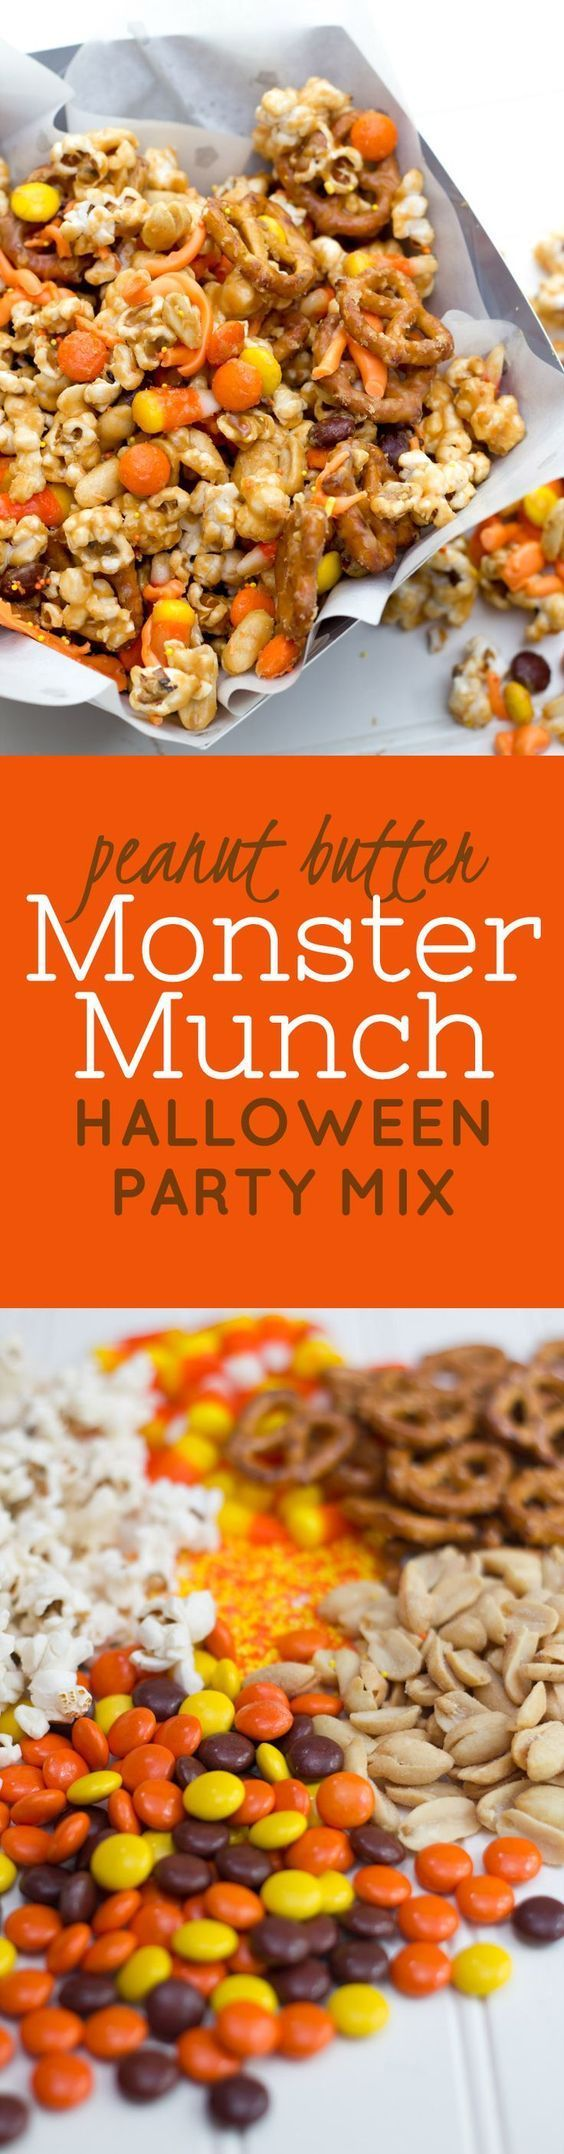 Check out Peanut Butter Monster Munch Halloween Party Mix. It's so ...